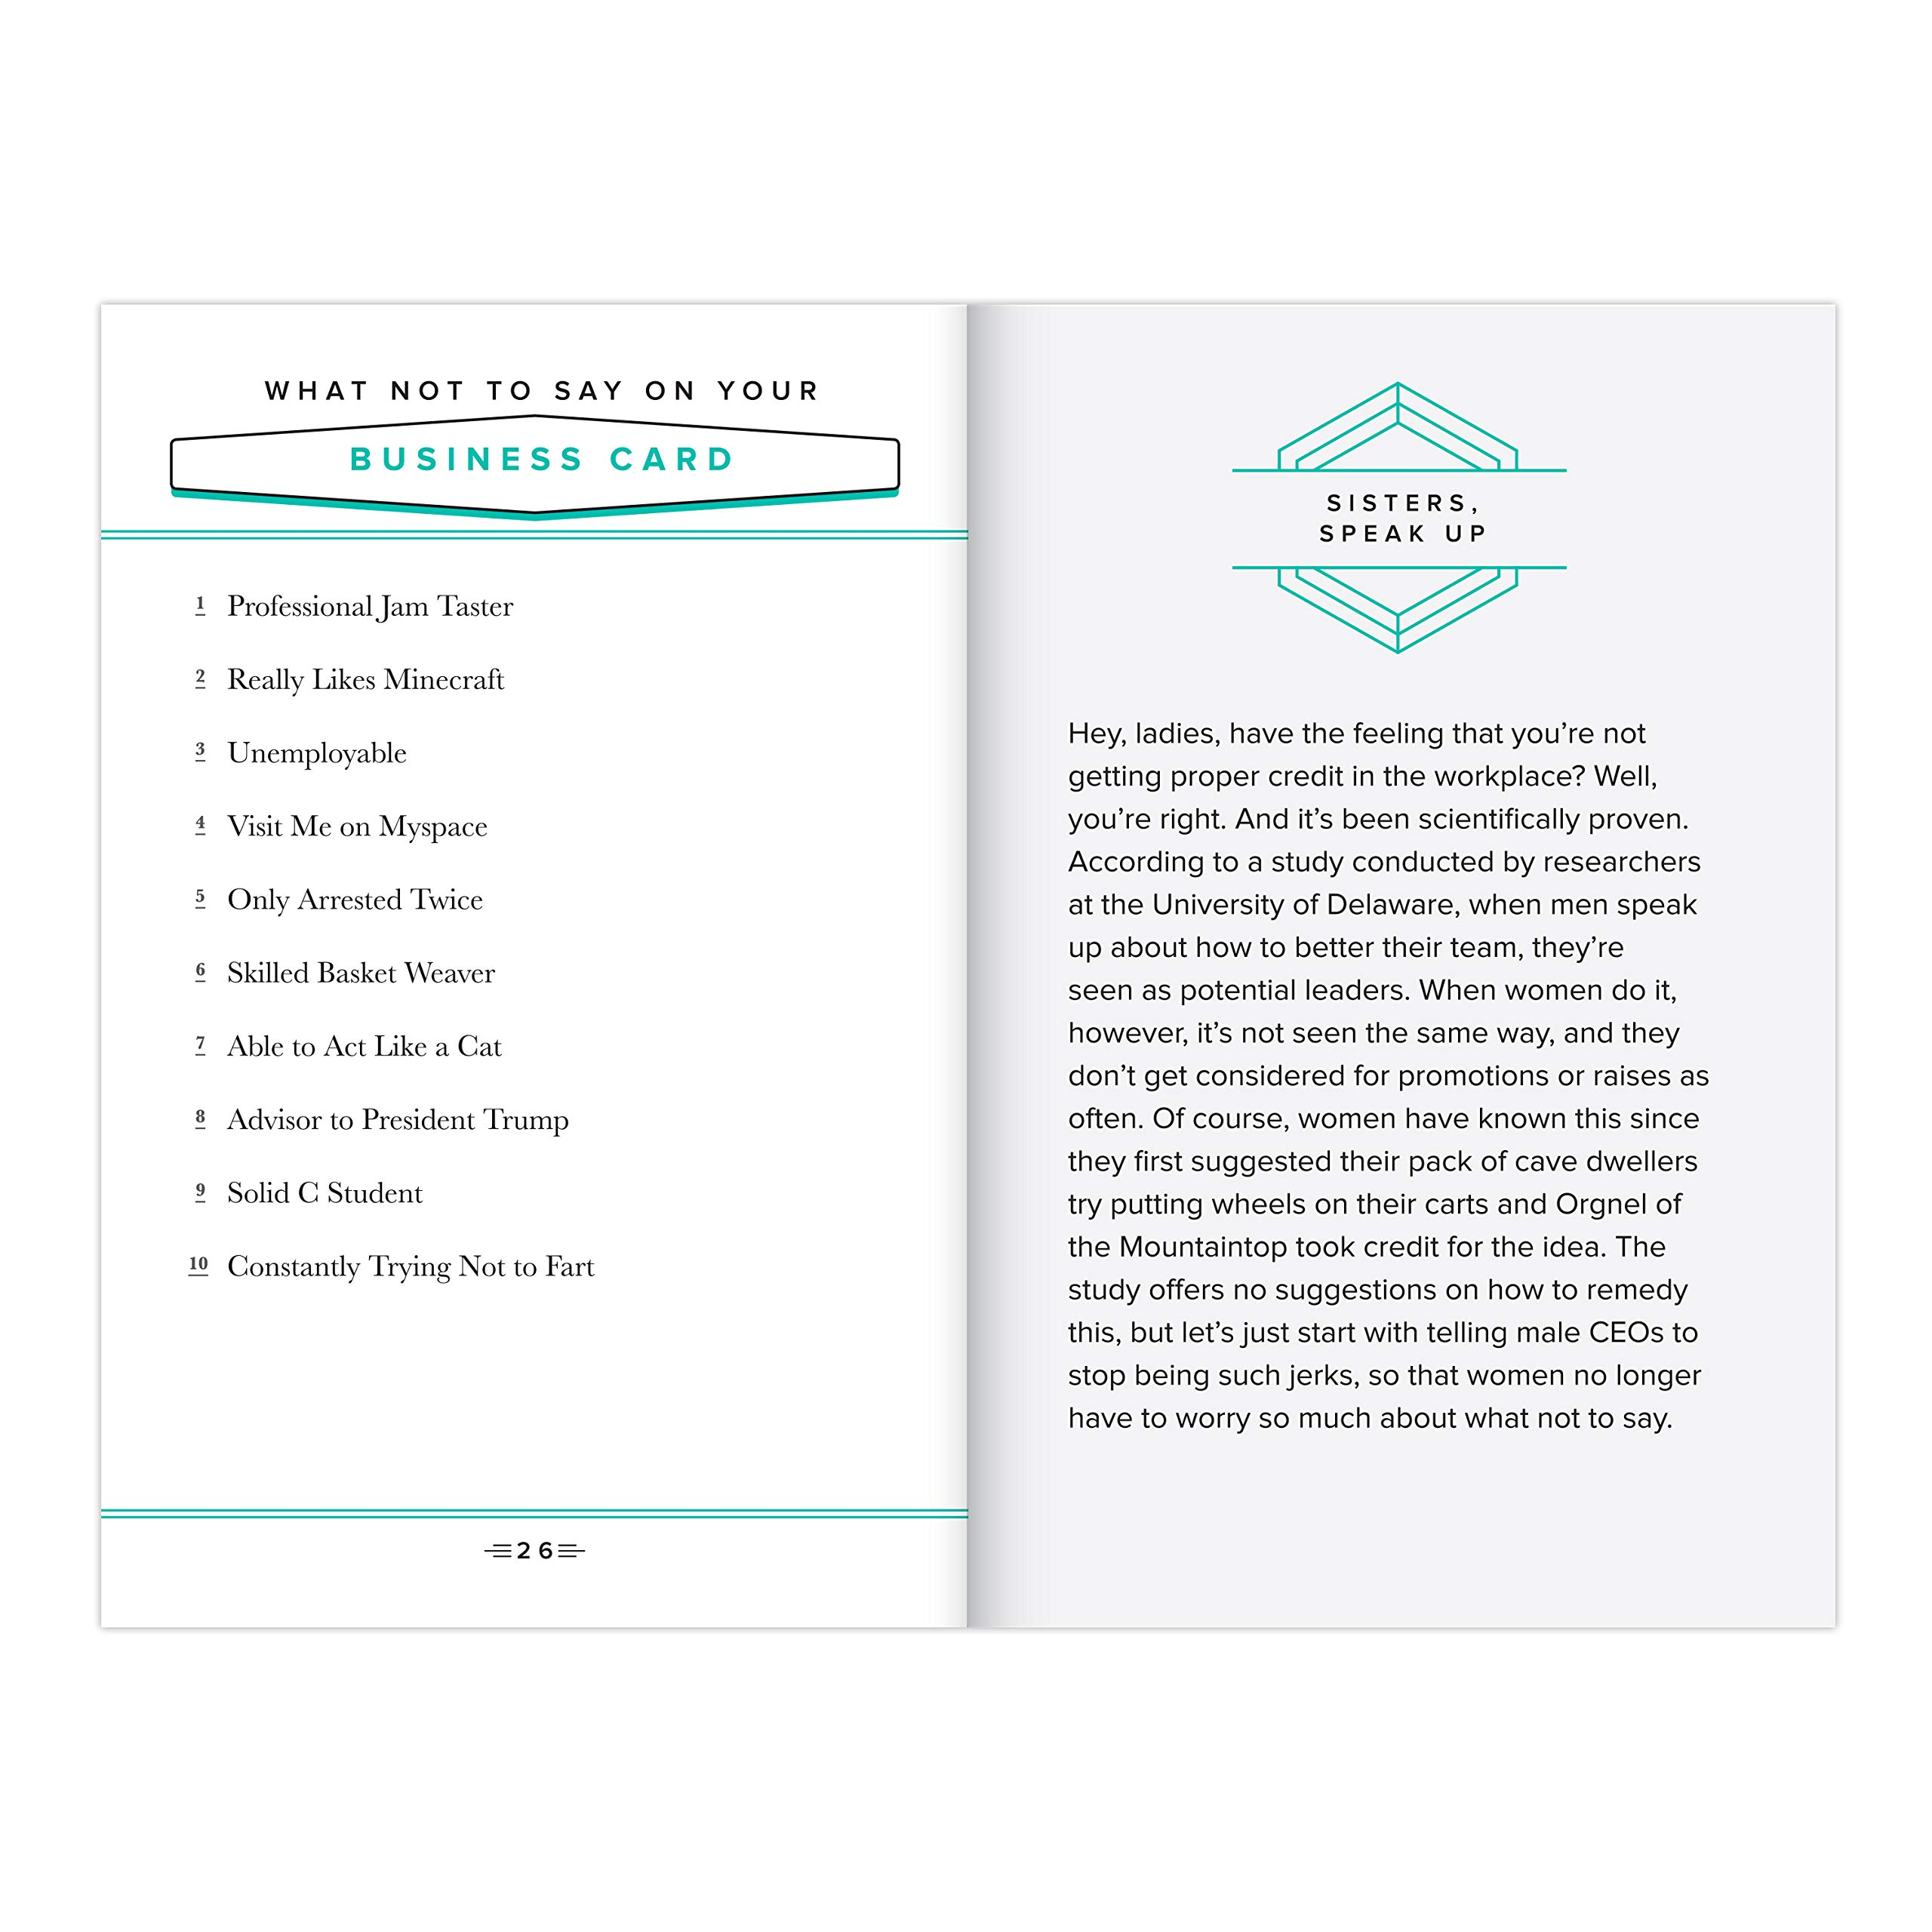 A spread view of the office book featuring text about what not to say on your business card and a highlight section.